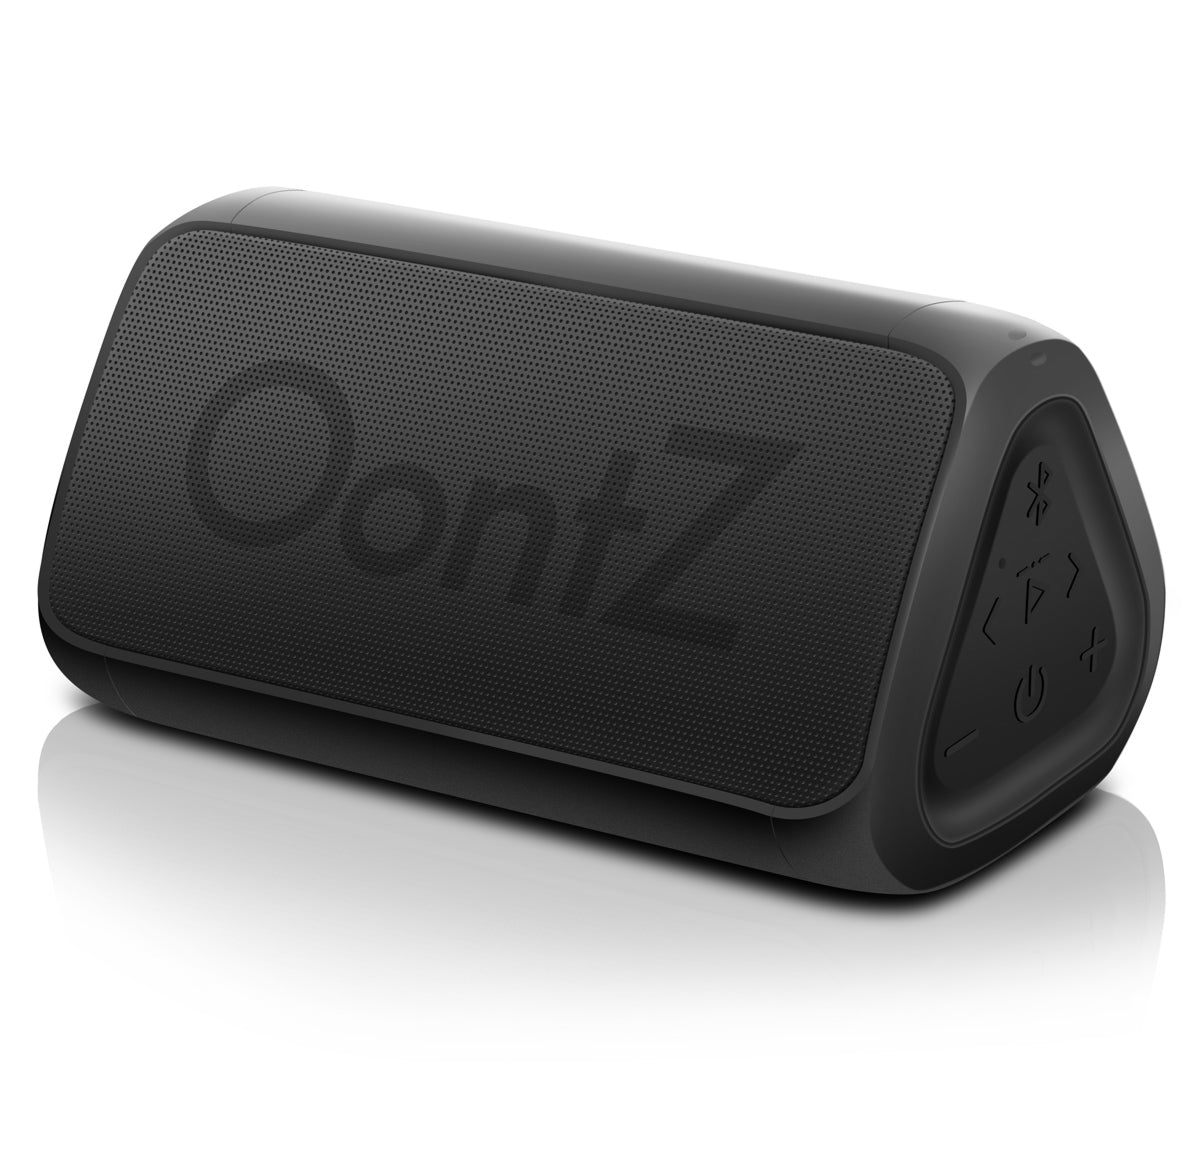 OontZ Angle 3 RainDance Portable Bluetooth Speaker